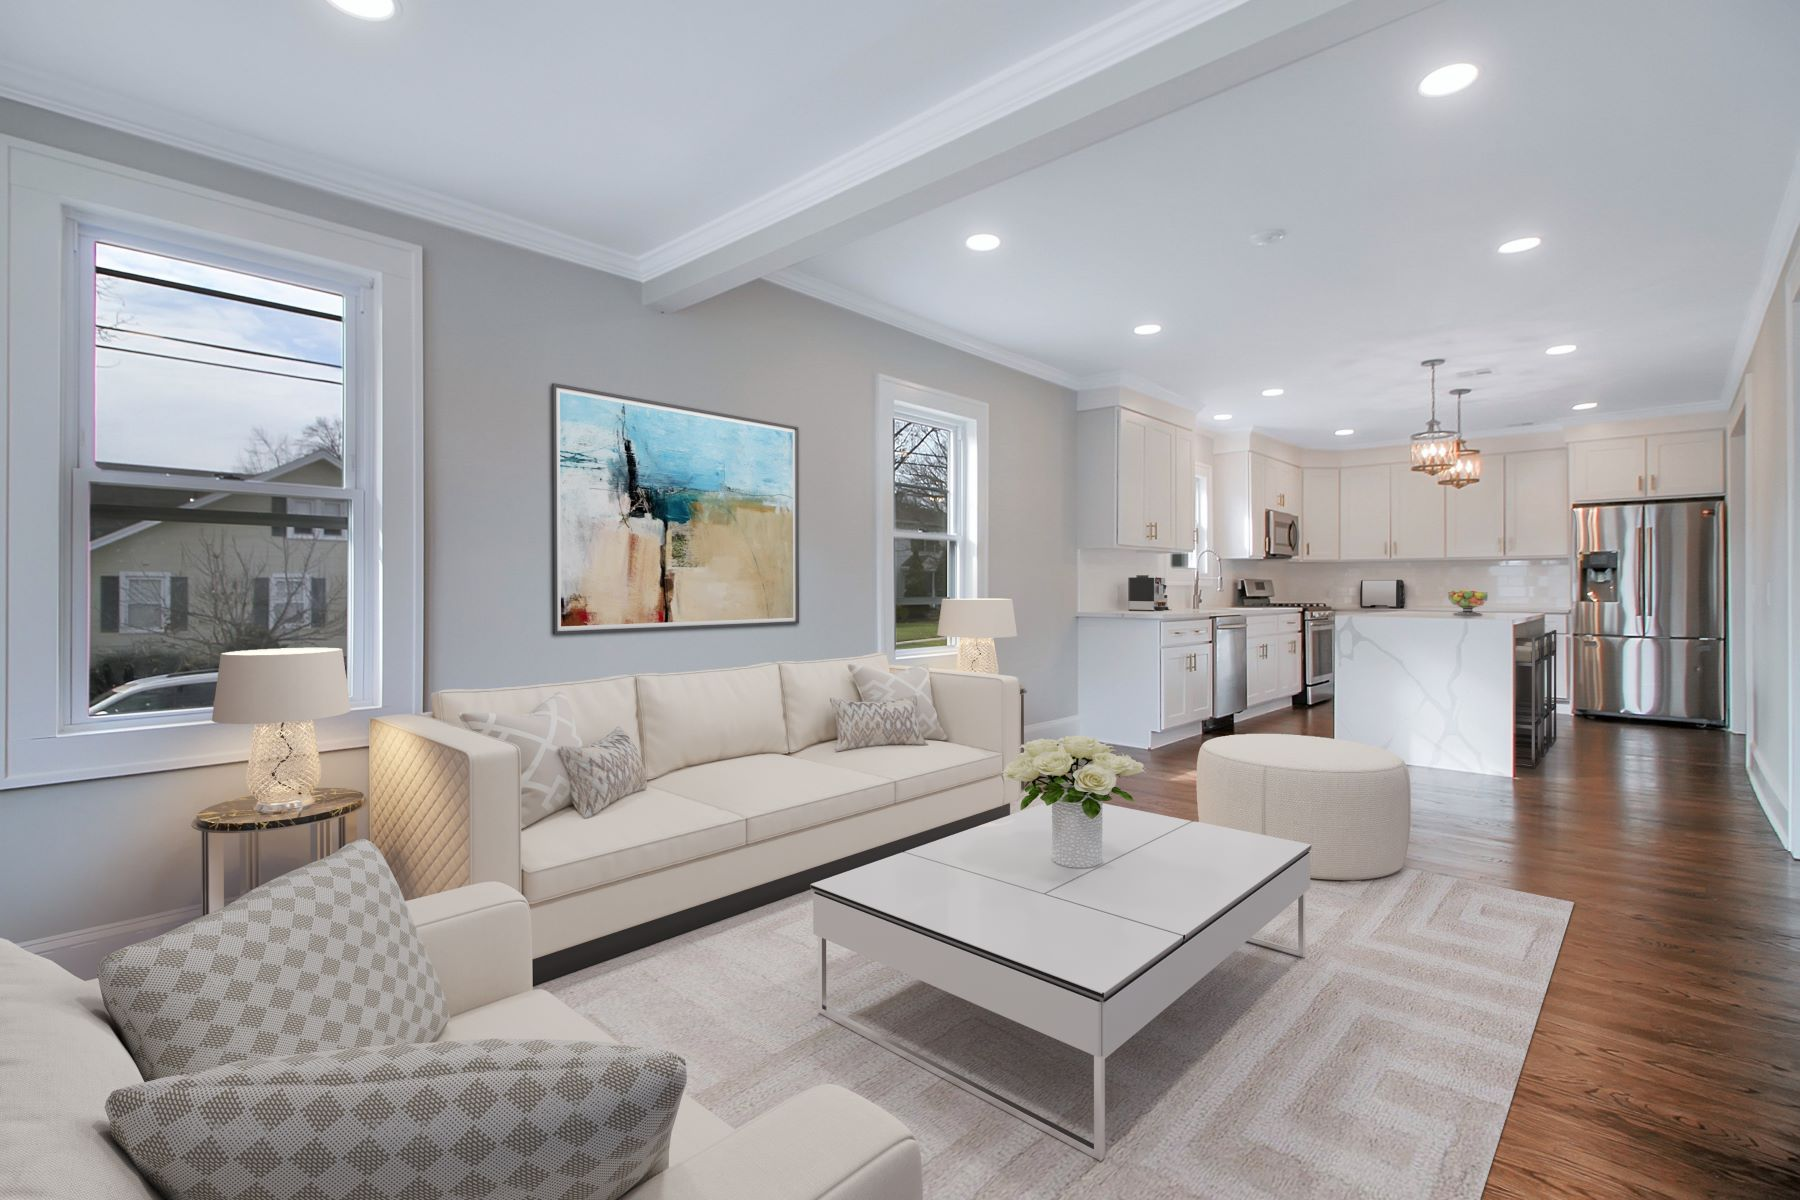 Single Family Homes for Sale at Beautifully Remodeled 124 Hillcrest Avenue Cranford, New Jersey 07016 United States